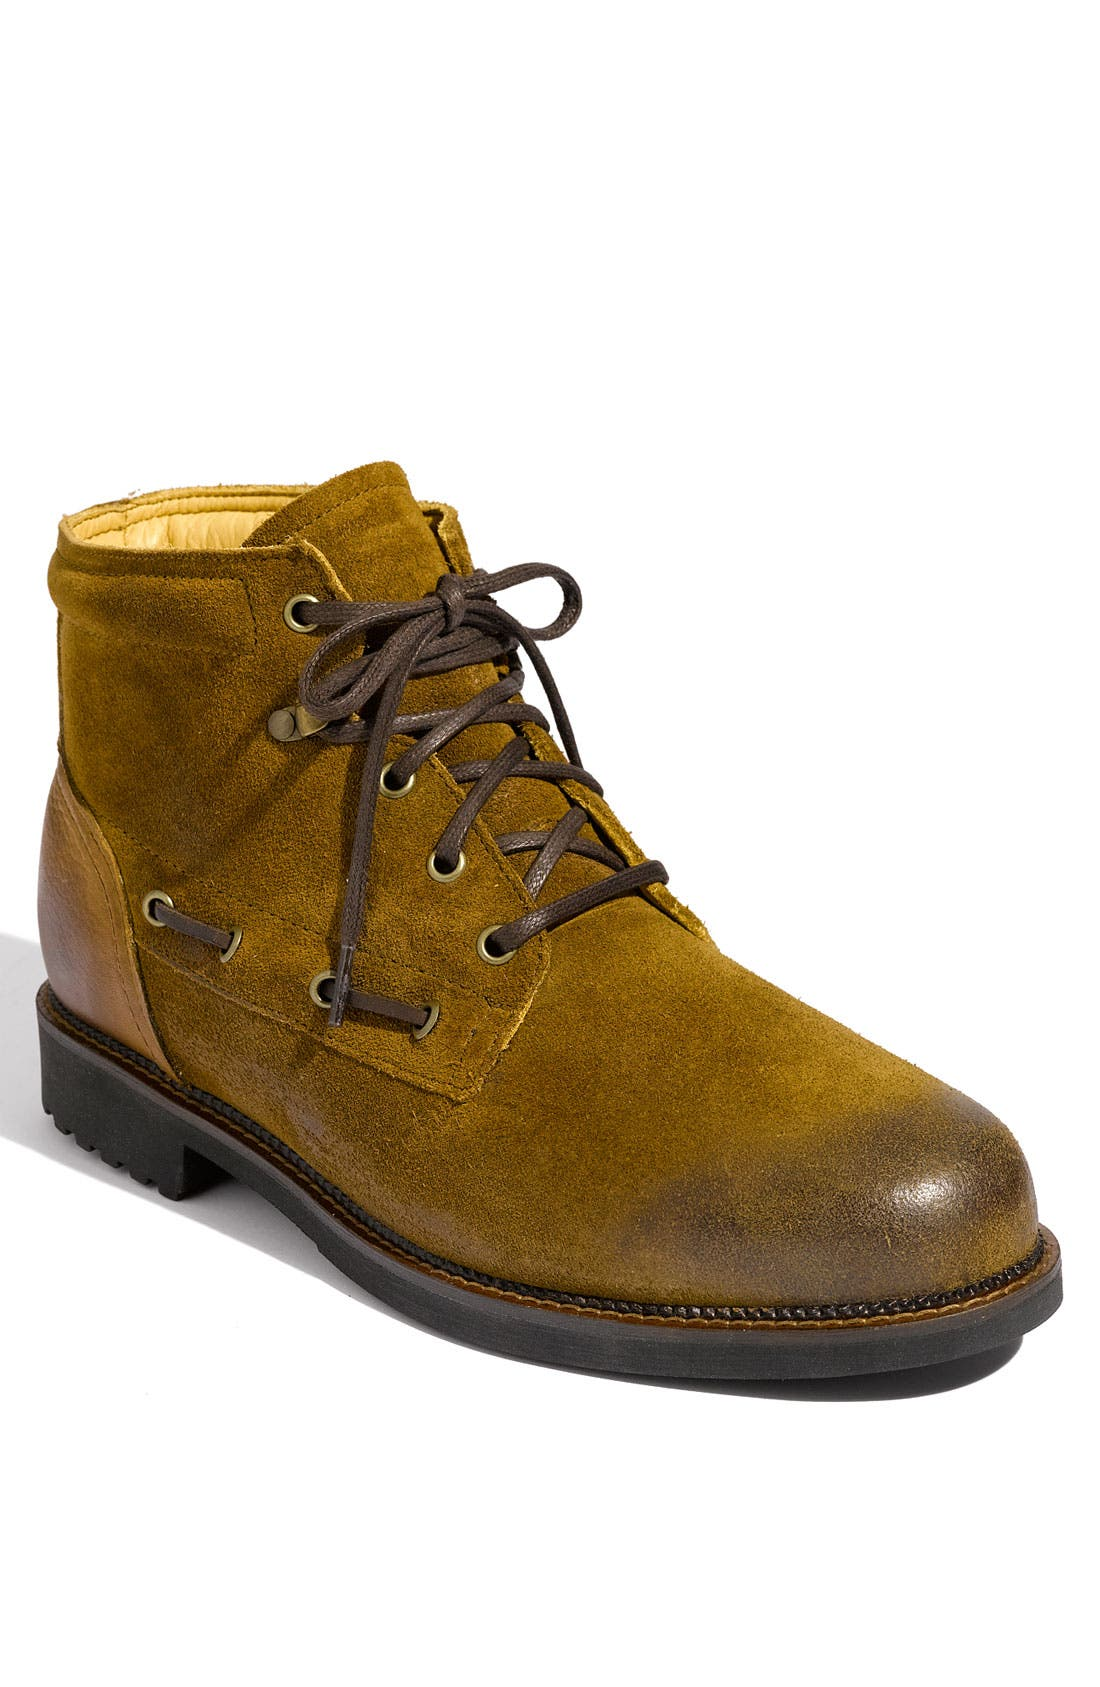 Alternate Image 1 Selected - Neil M 'Jasper' Boot (Online Only)